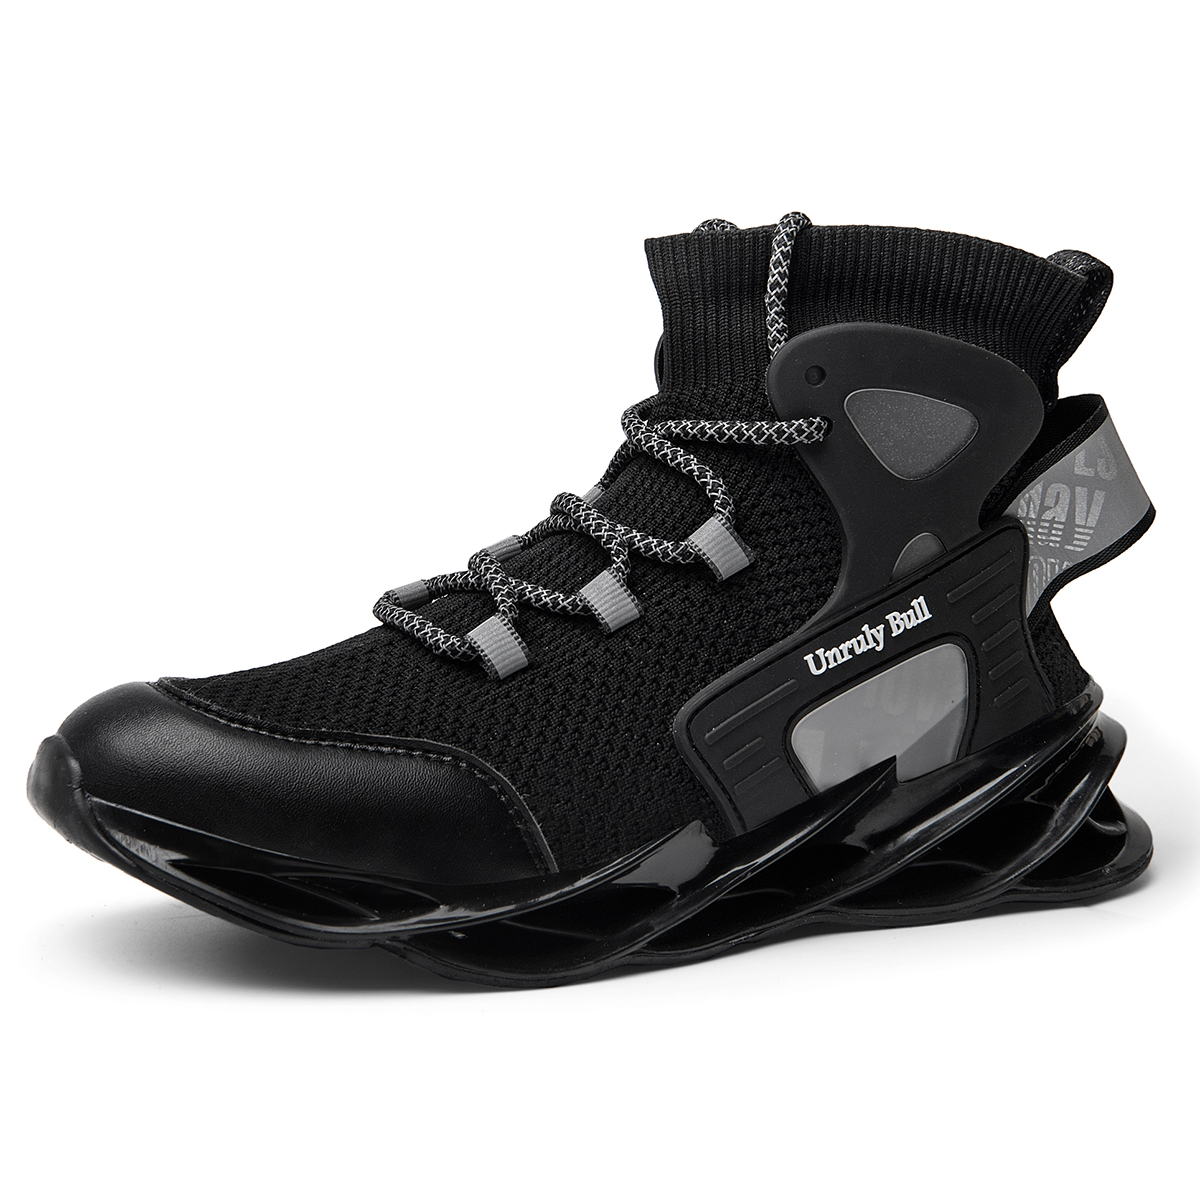 Blade Running Shoes for Men Breathable Mesh Socks Sneakers Antiskid Damping Outsole Athletic Sport Shoes Training